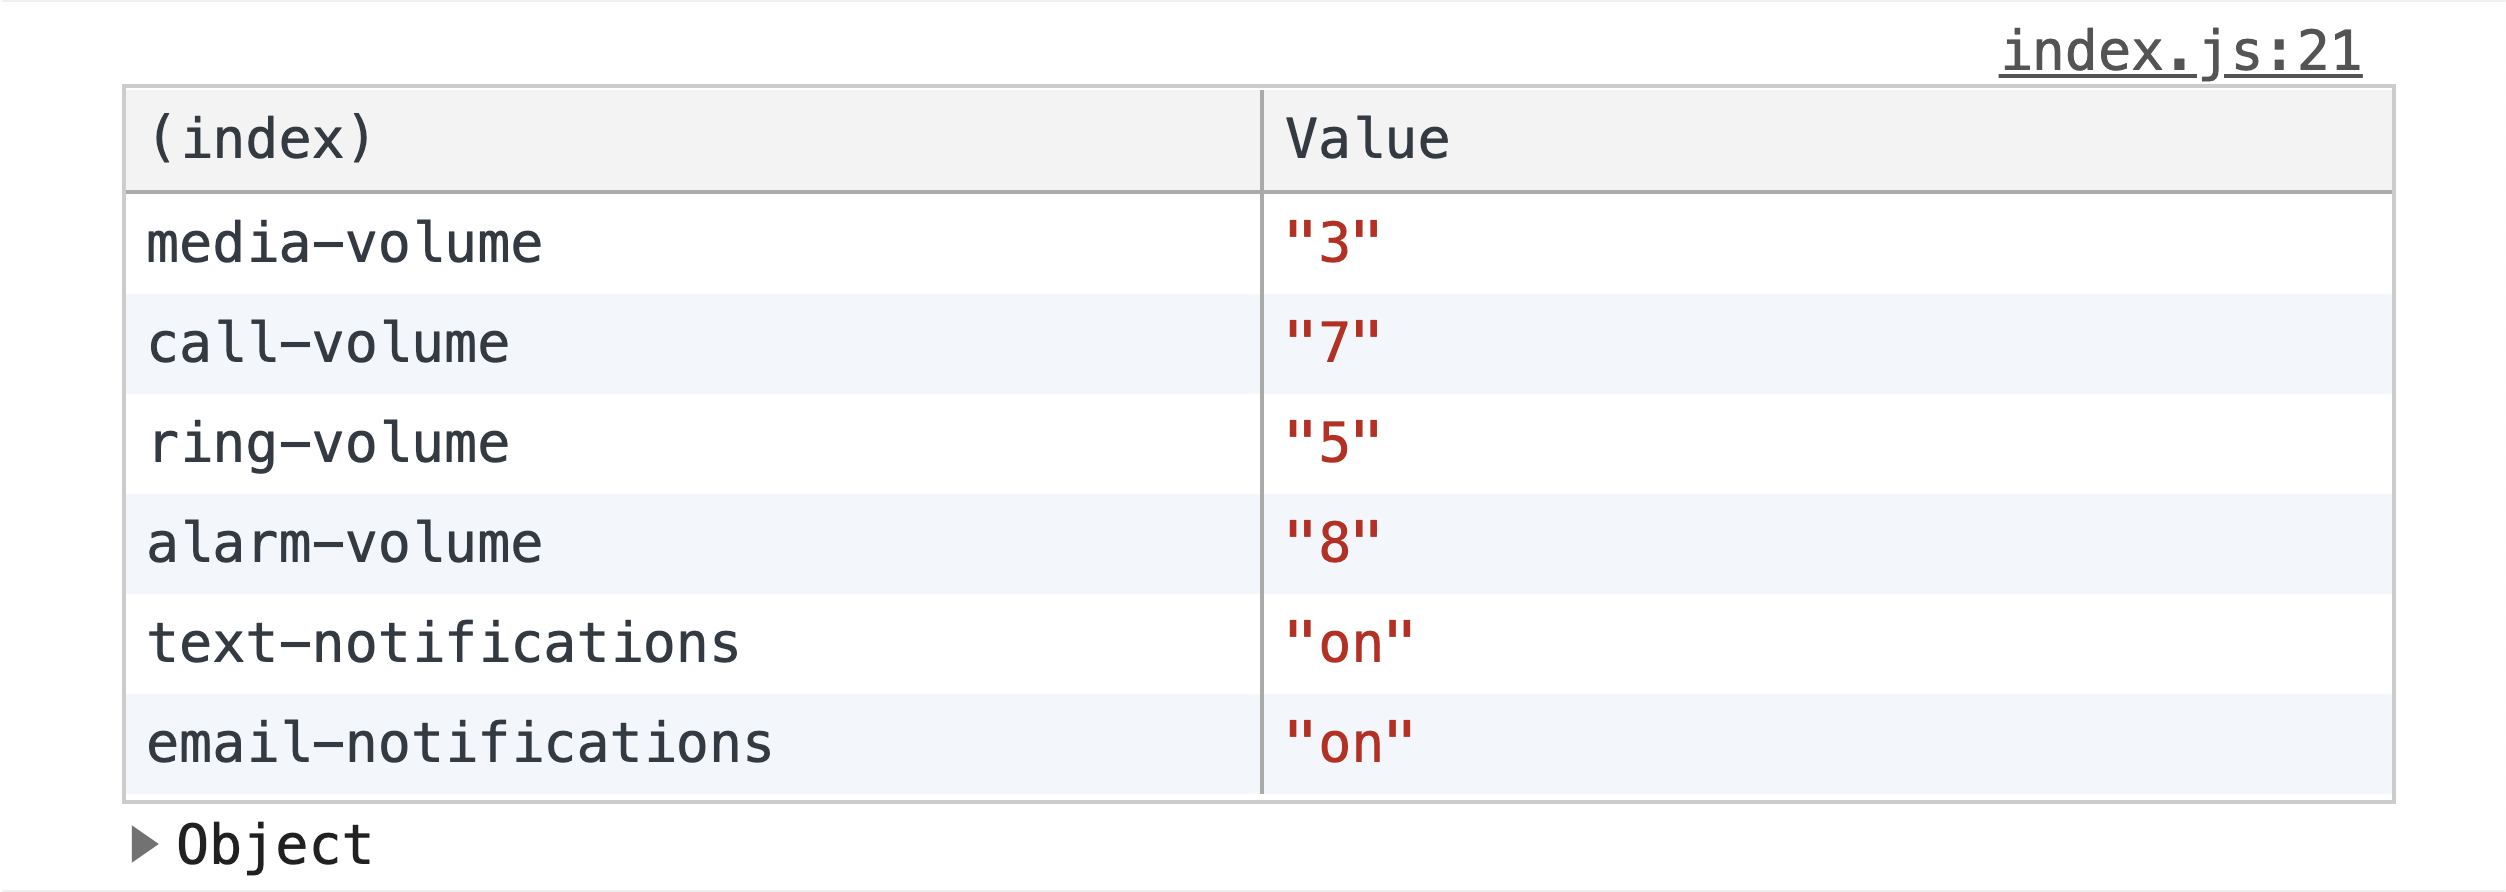 A screenshot of the console.table() results, where the form data is shown in a table